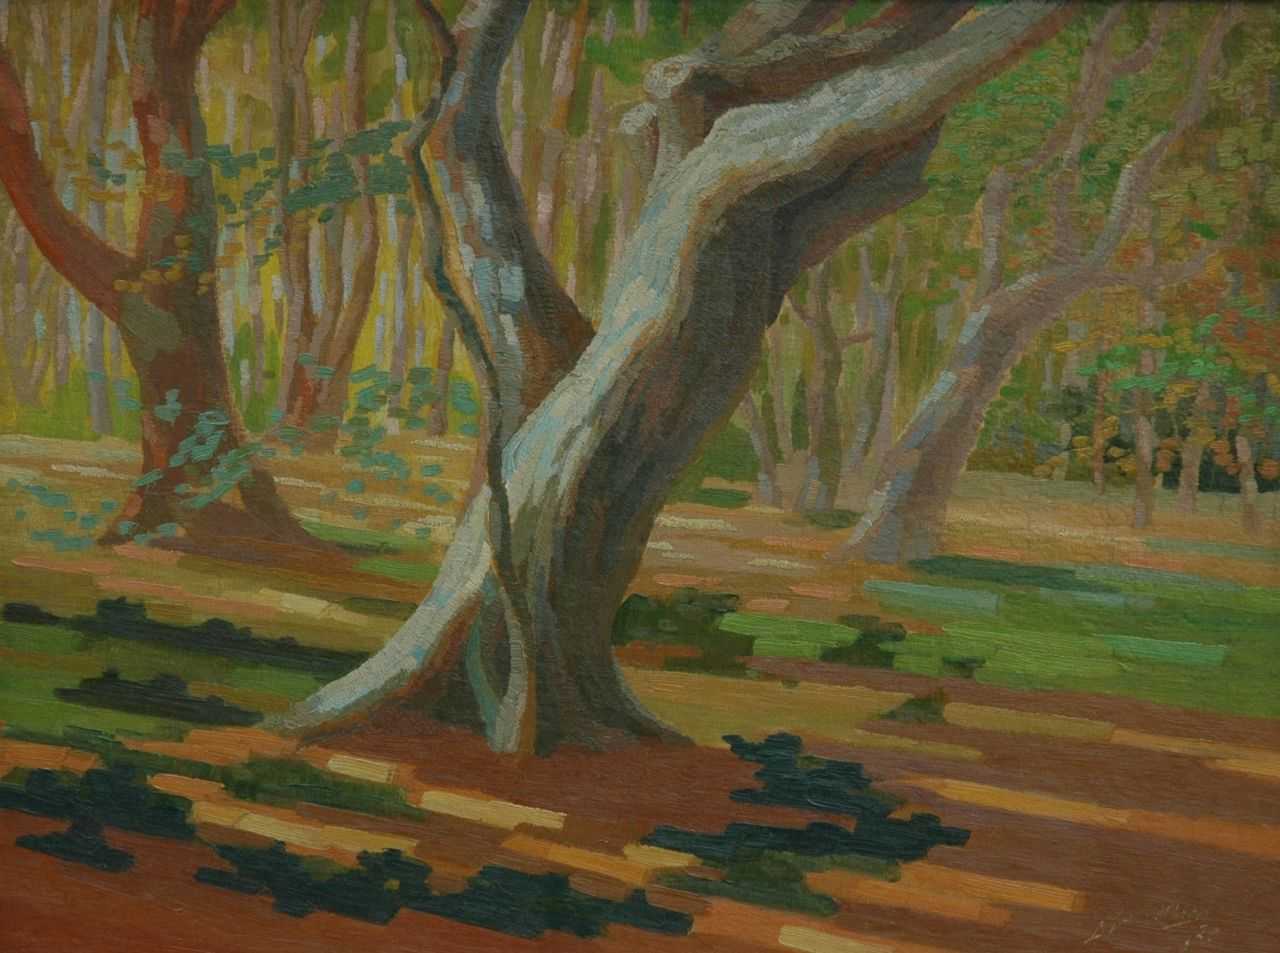 Smorenberg D.  | Dirk Smorenberg, A wooded landscape, oil on canvas laid down on panel 44.6 x 59.0 cm, signed l.r. and dated '20